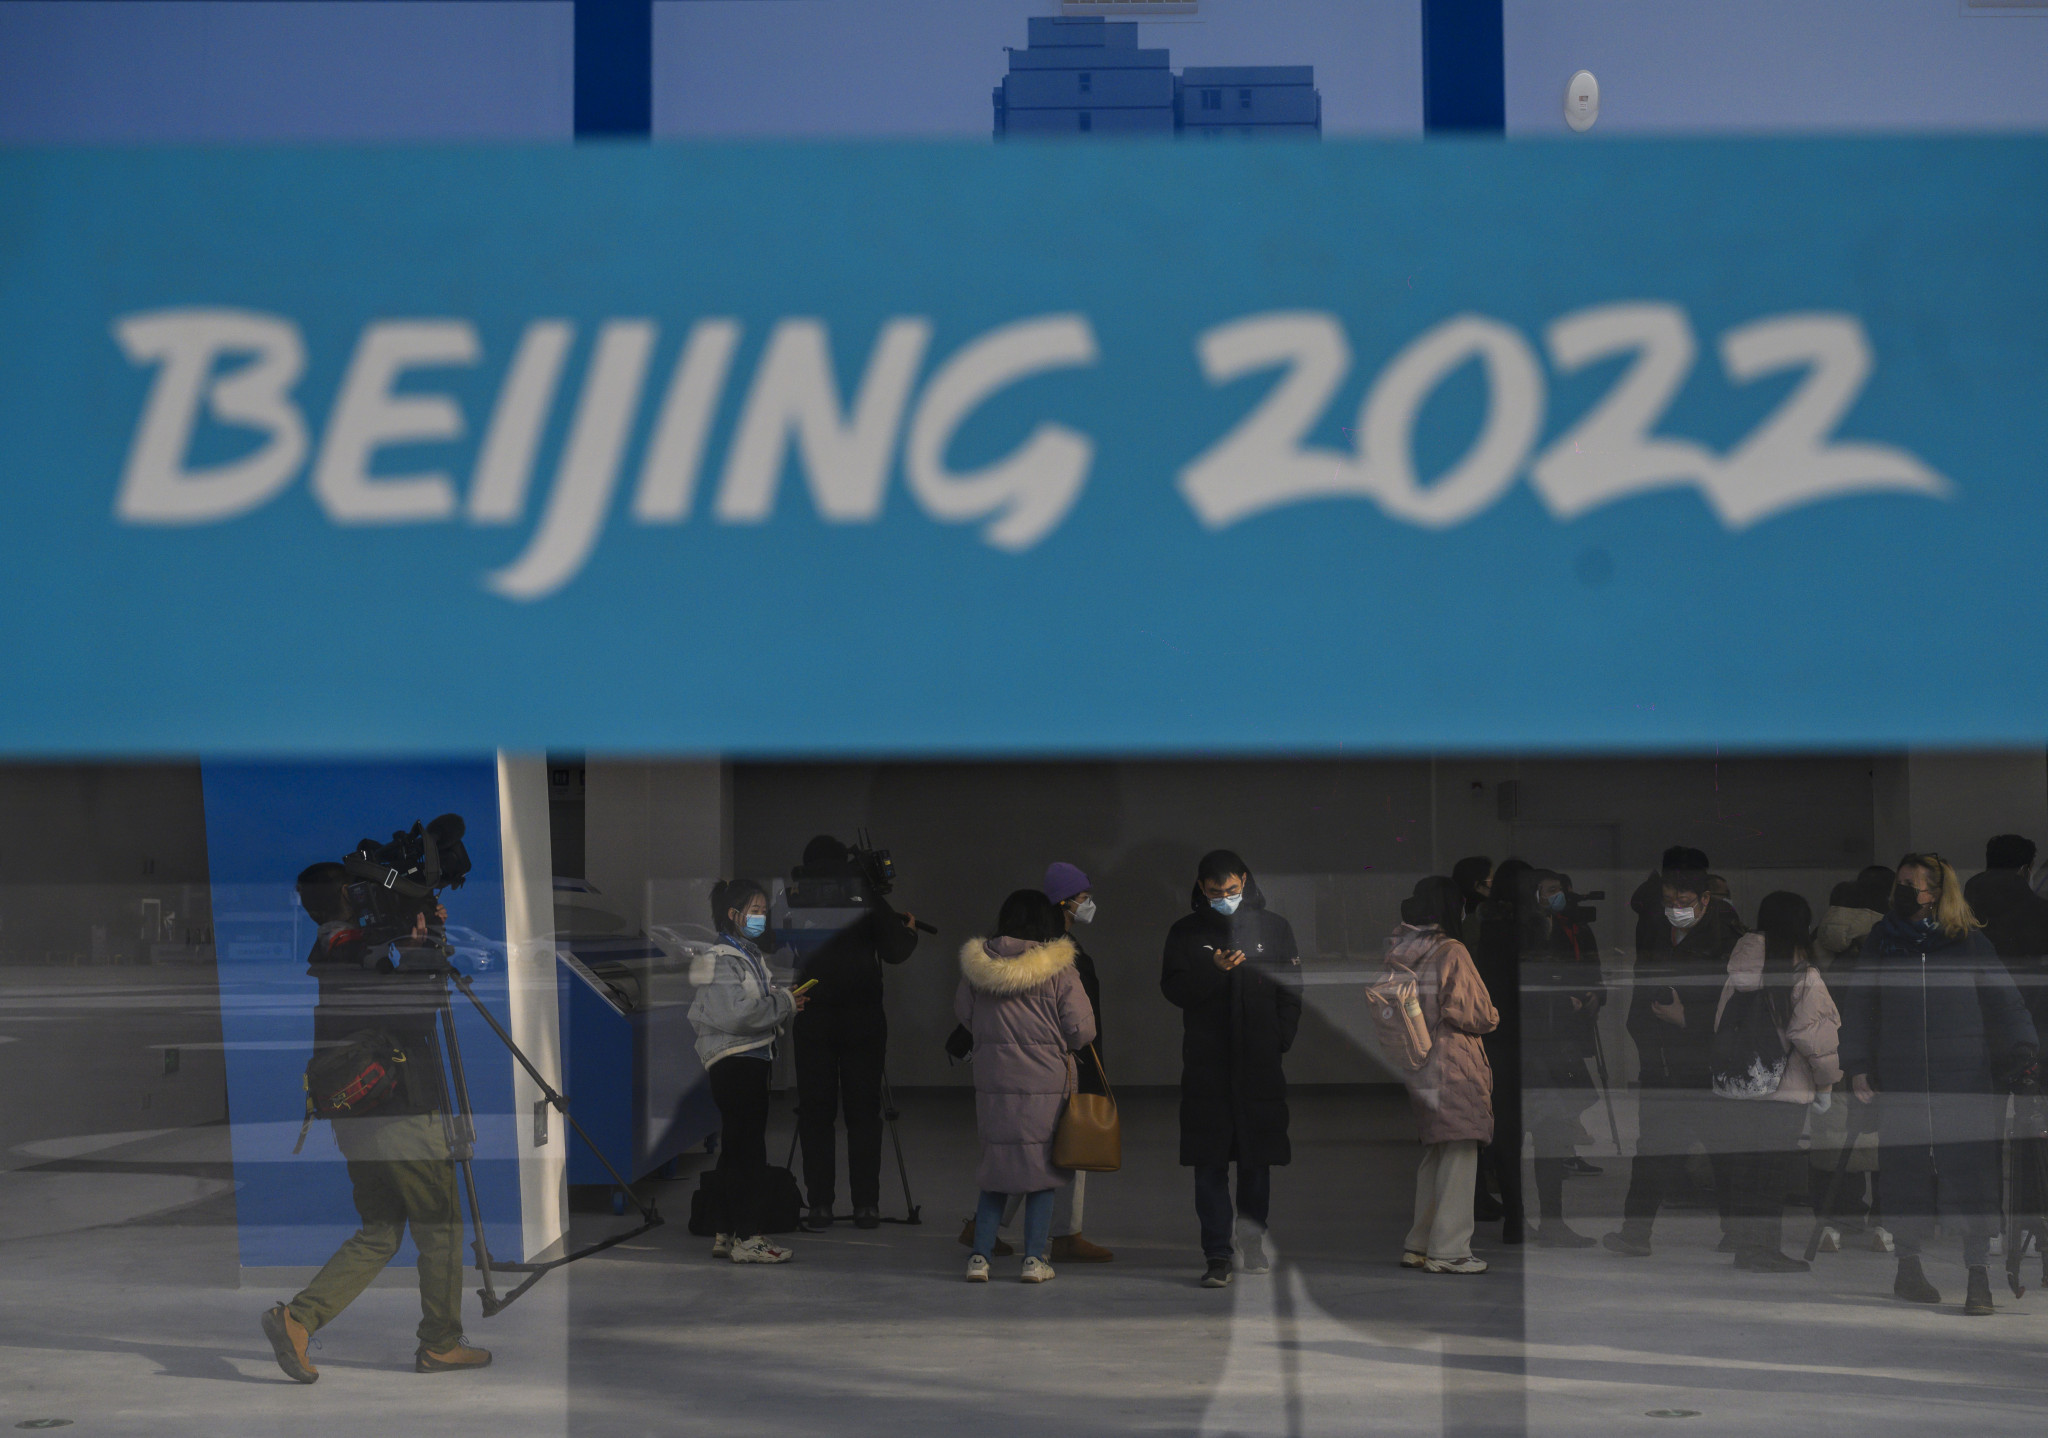 """Thomas Bach has described the readiness of Beijing 2022 with just over a year to go as """"almost a miracle"""" ©Getty Images"""